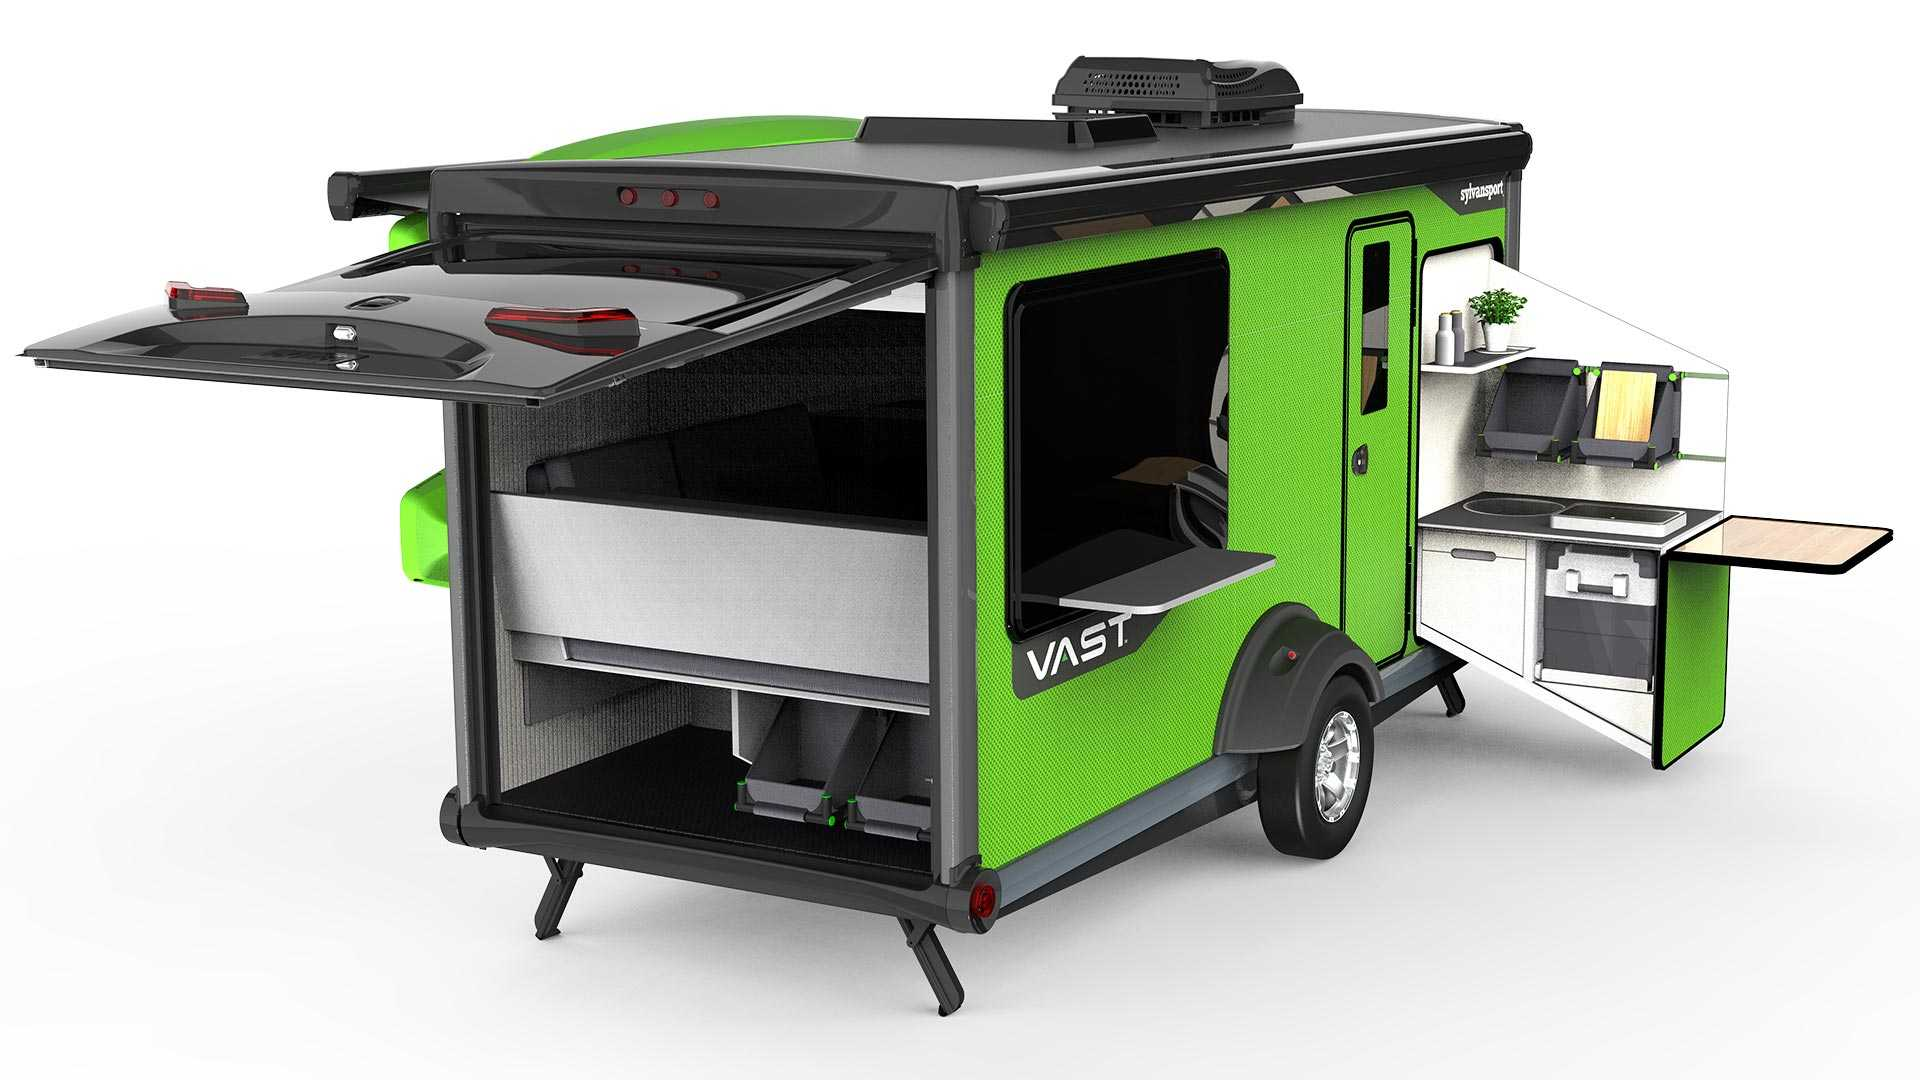 SylvanSport Vast Debuts As This Year's Coolest Camping Trailer